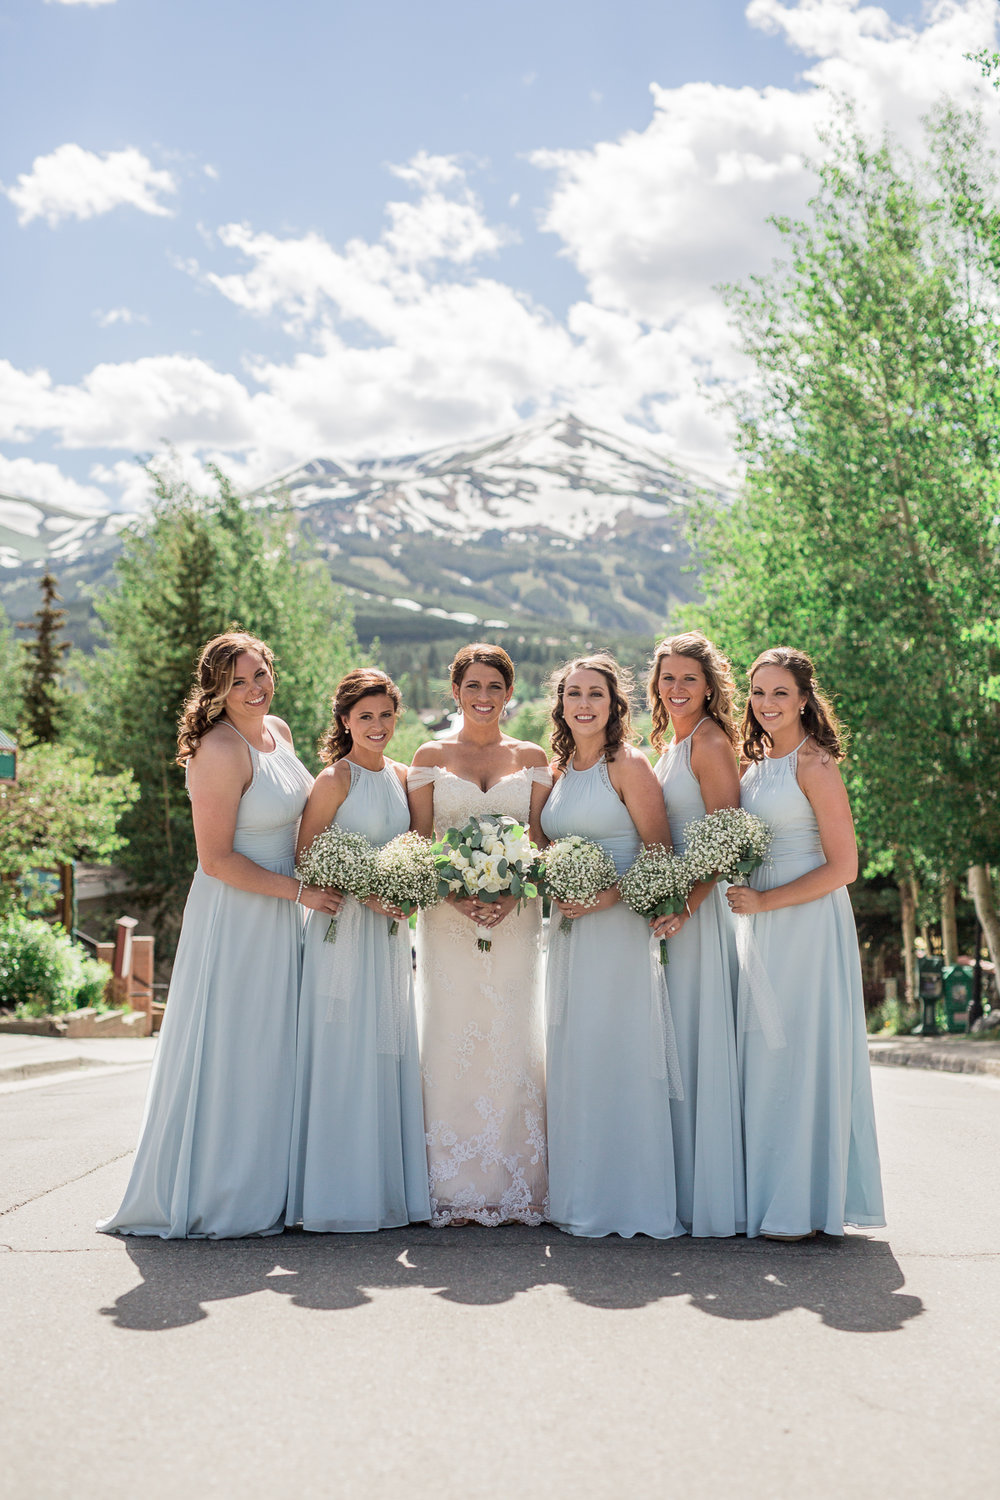 StaciDesign-Colorado-Wedding-4736.jpg